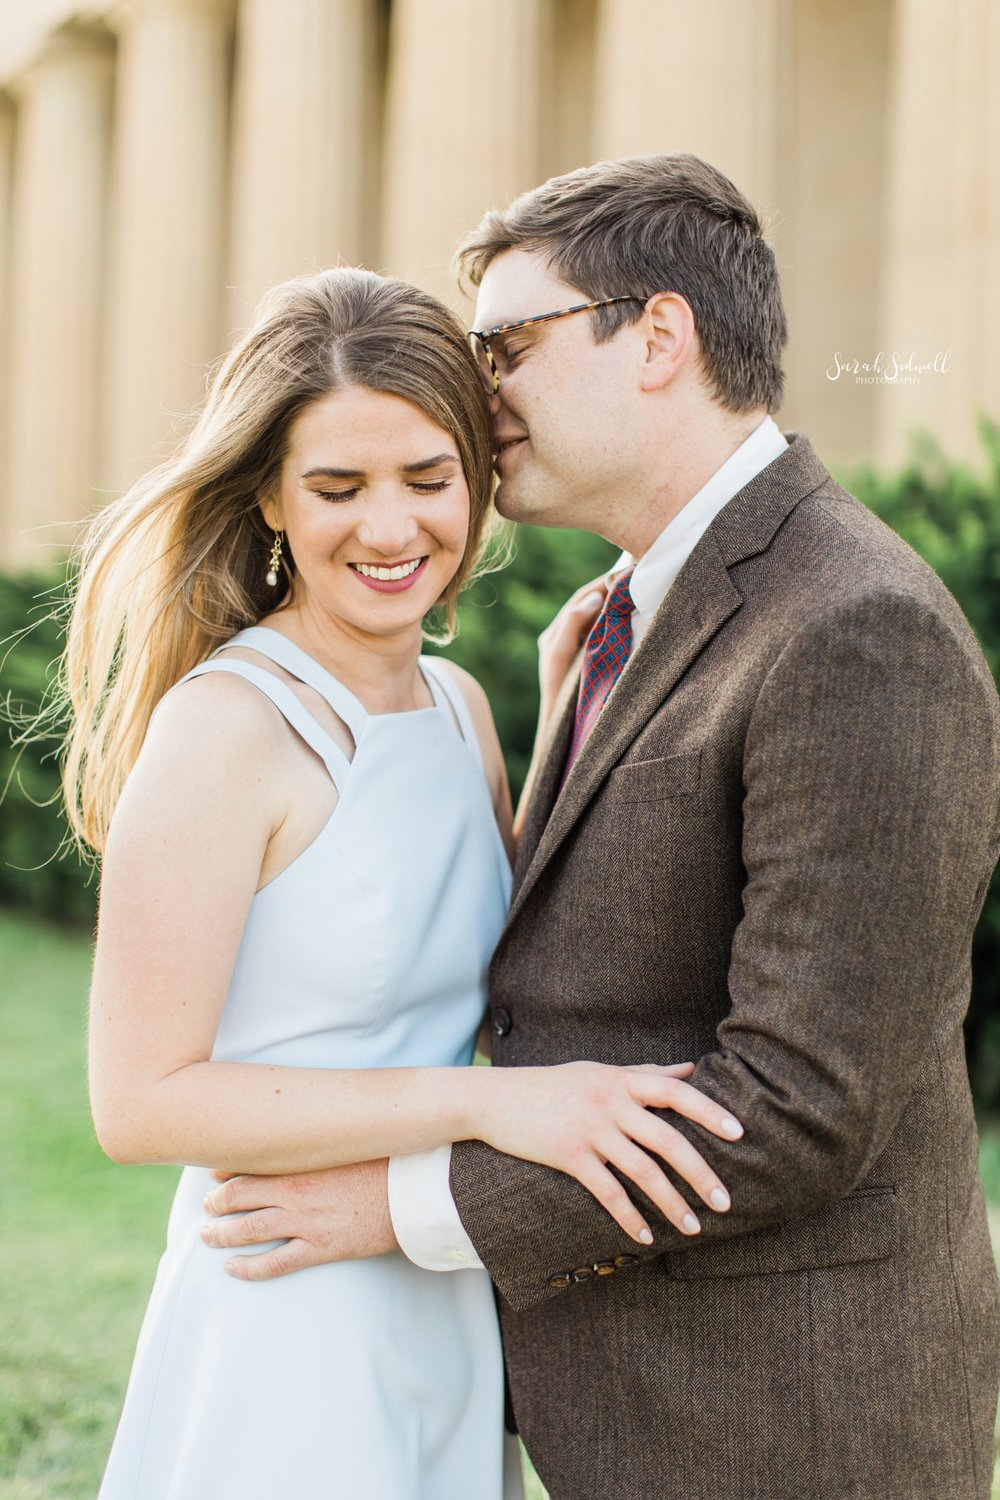 A man whispers into his fiance's ear.